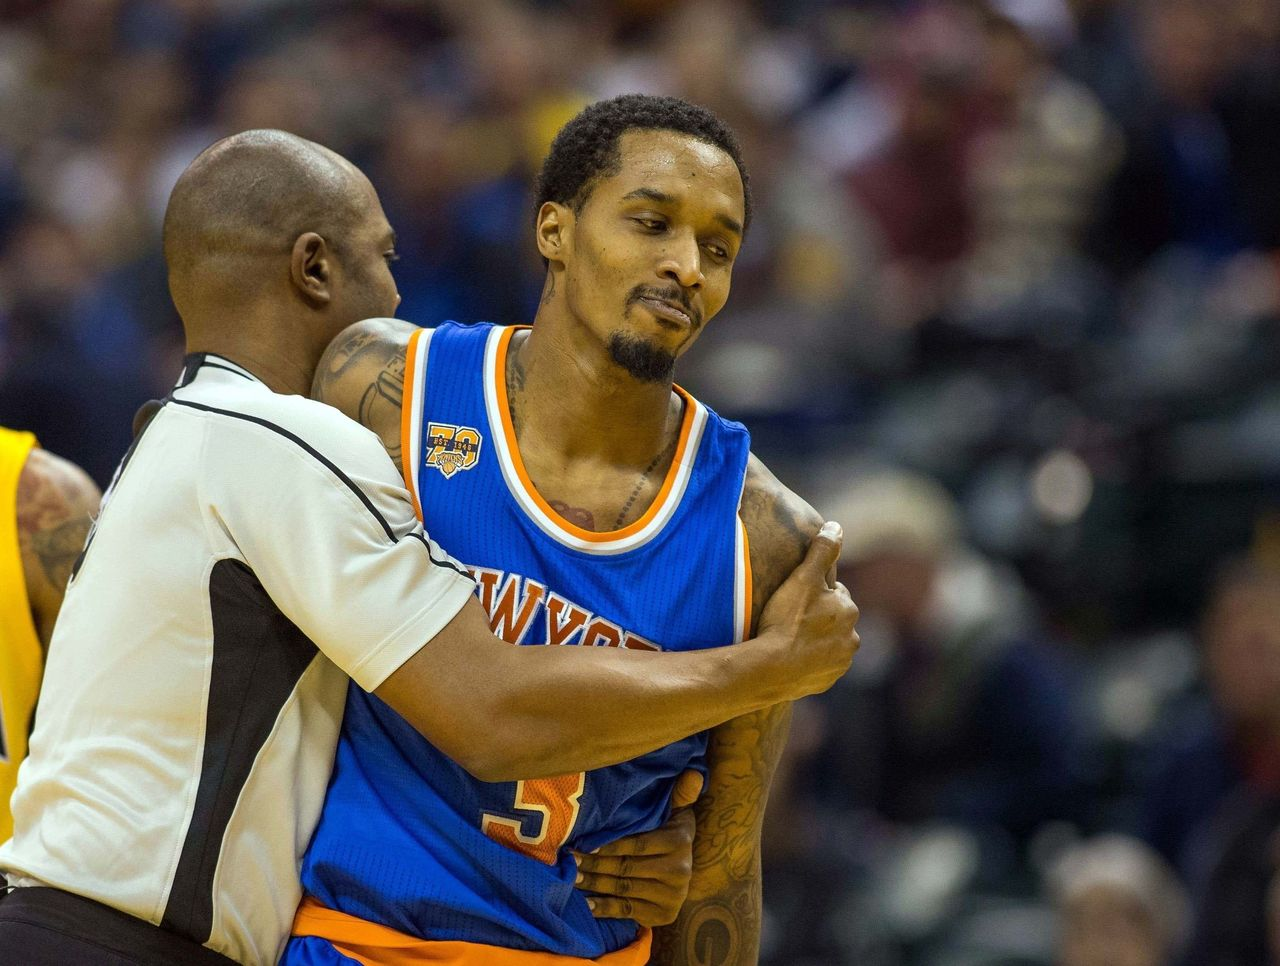 Cropped 2017 01 08t032721z 1995857643 nocid rtrmadp 3 nba new york knicks at indiana pacers